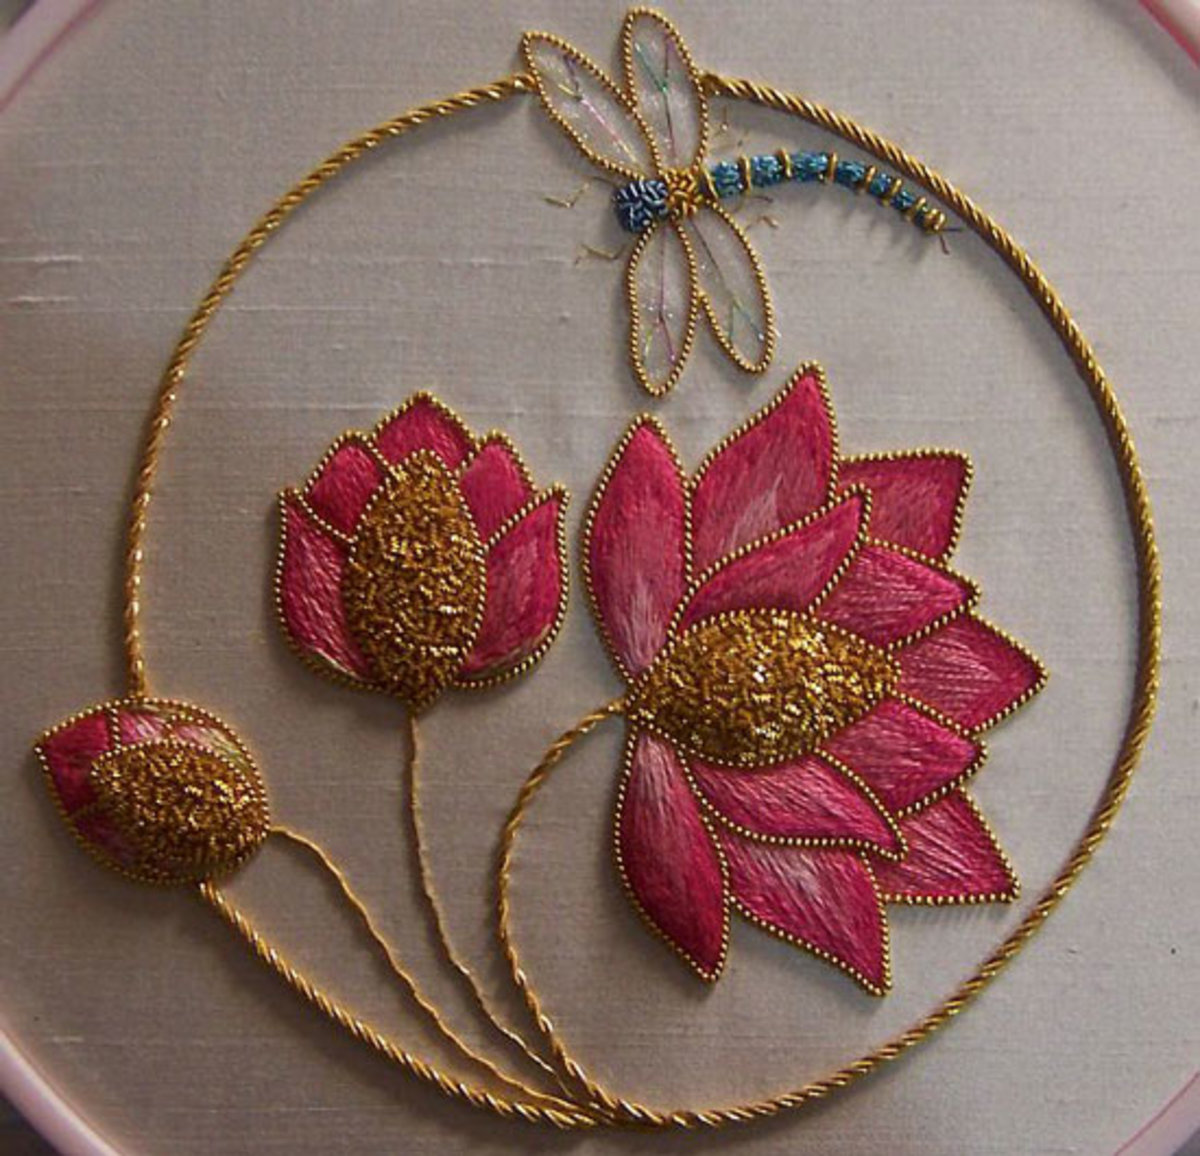 Embroidery of India: The Symbols, Motifs, and Colors